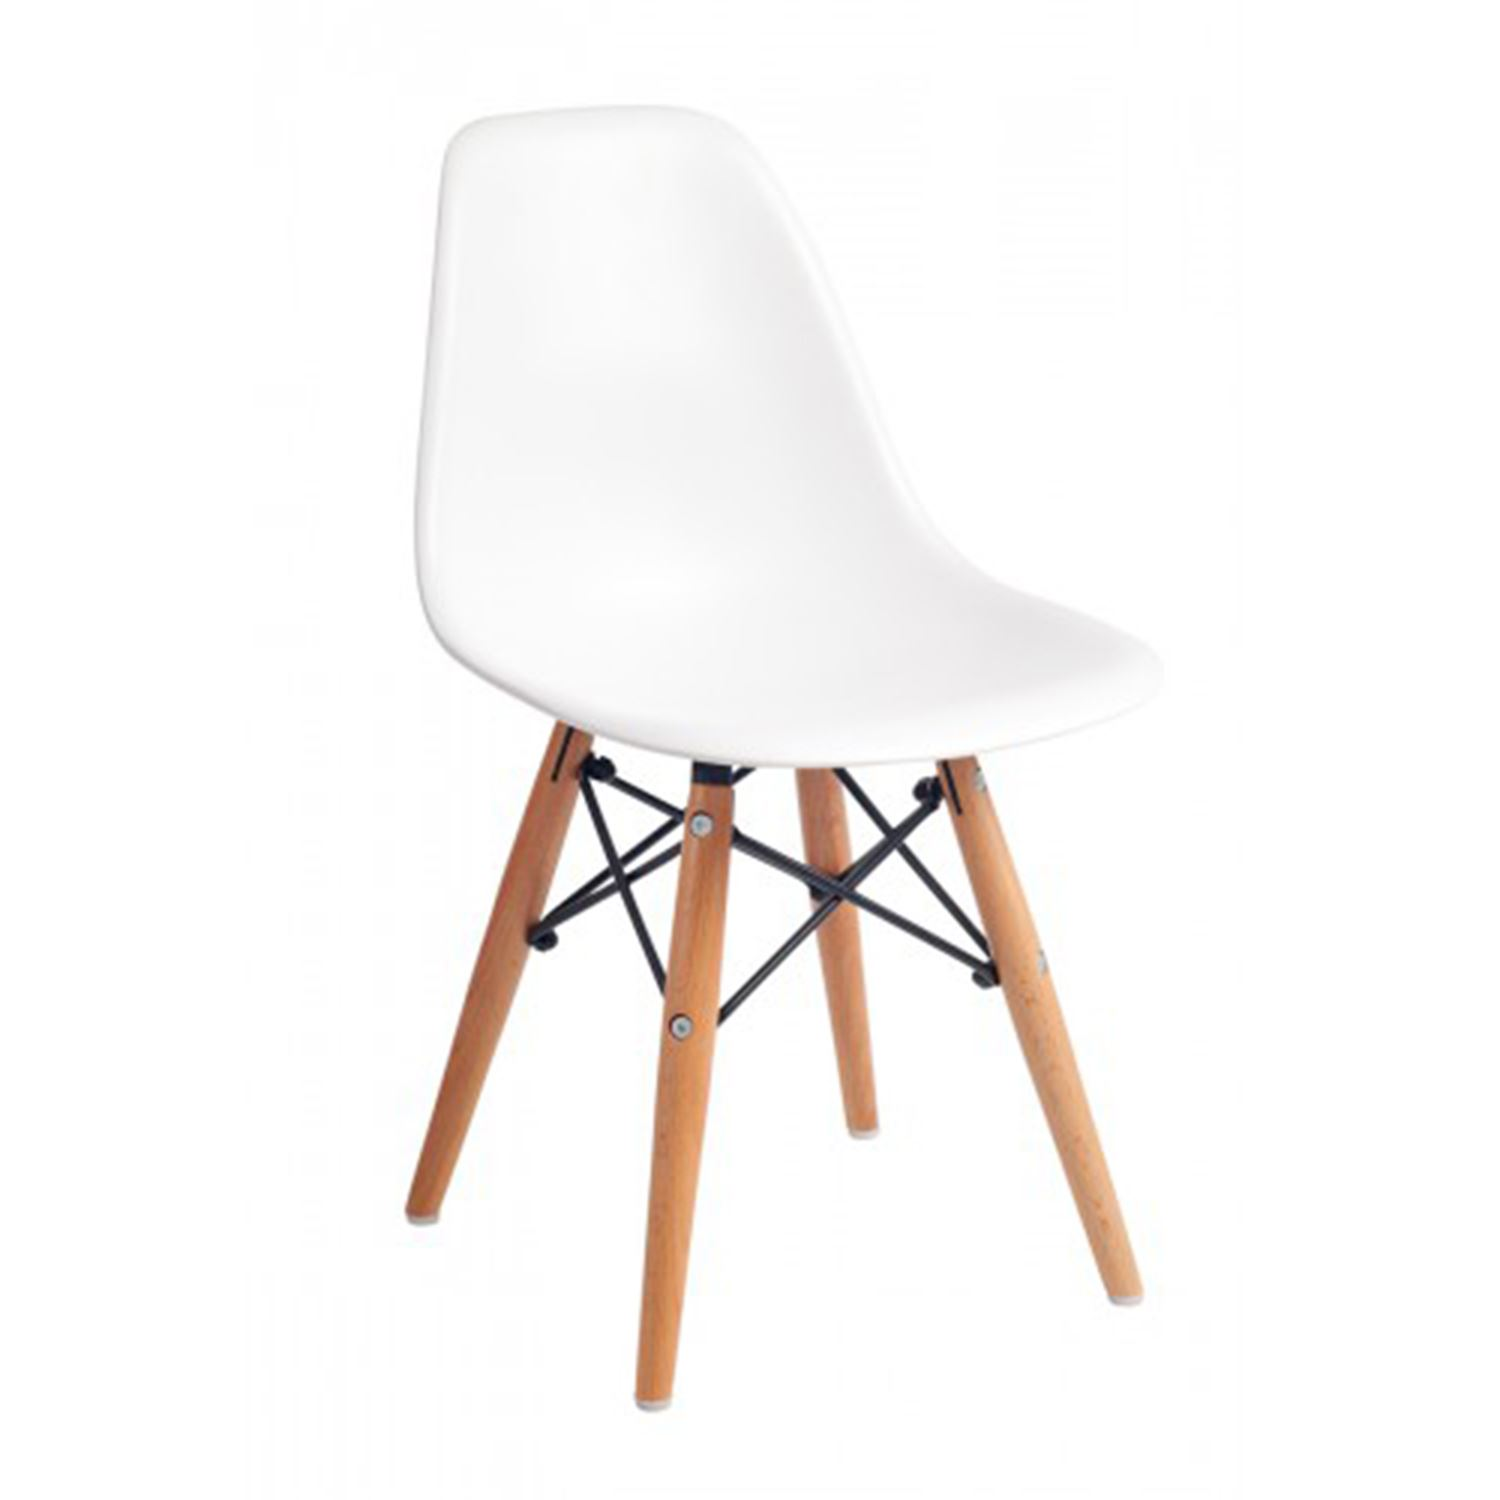 Kids Eames DSW Eiffel White Dining Chair And Table Set